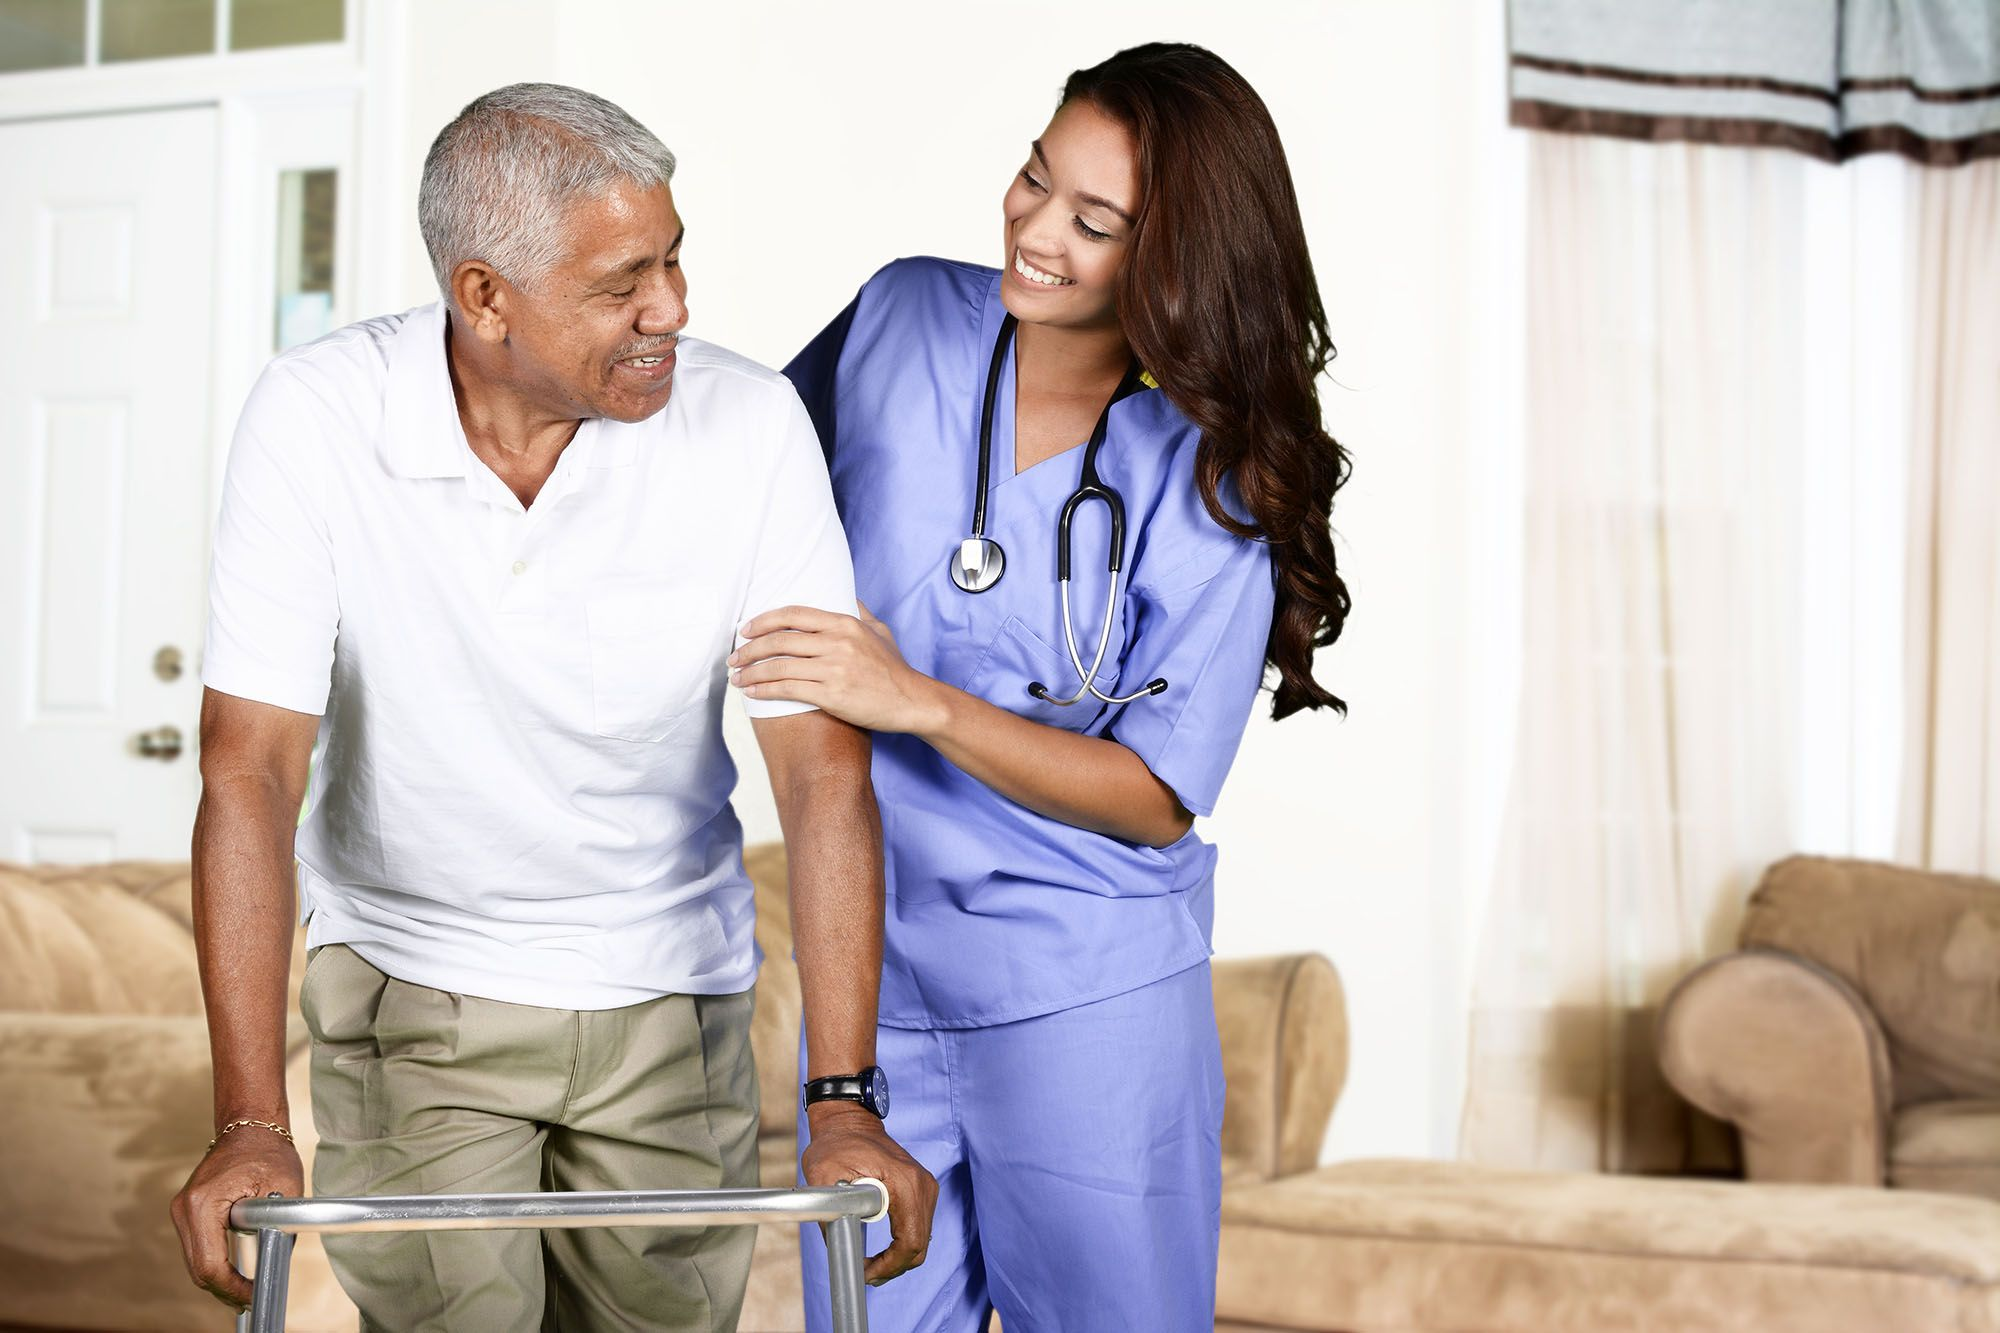 Enhance Patient Care With Healthcare Recruiting Solutions